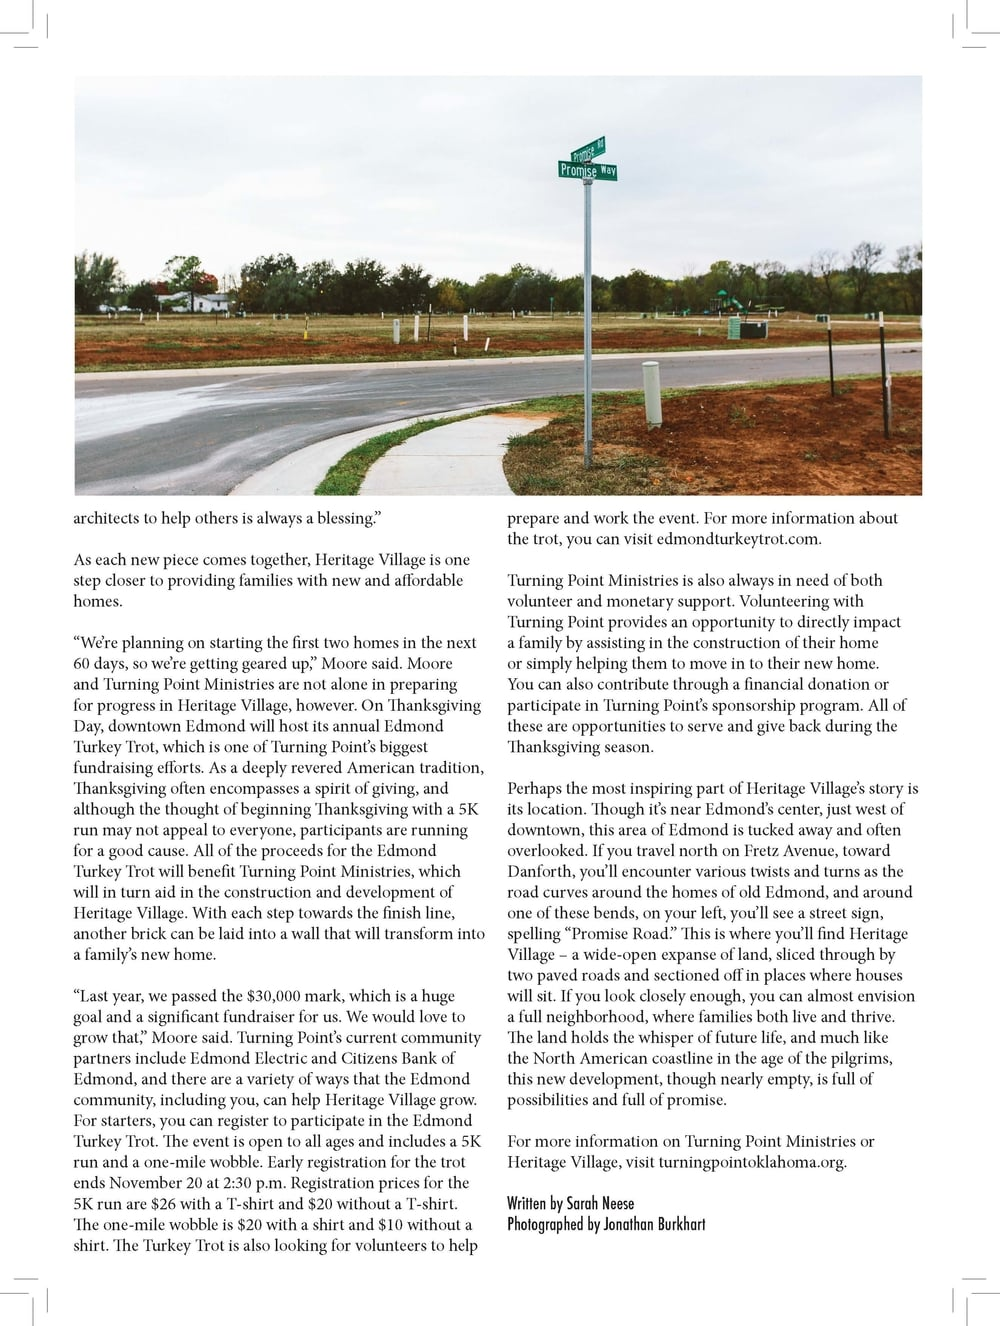 """architects to help others is always a blessing.""""  As each new piece comes together, Heritage Village is one  step closer to providing families with new and affordable  homes.  """"We're planning on starting the first two homes in the next  60 days, so we're getting geared up,"""" Moore said. Moore  and Turning Point Ministries are not alone in preparing  for progress in Heritage Village, however. On Thanksgiving  Day, downtown Edmond will host its annual Edmond  Turkey Trot, which is one of Turning Point's biggest  fundraising efforts. As a deeply revered American tradition,  Thanksgiving often encompasses a spirit of giving, and  although the thought of beginning Thanksgiving with a 5K  run may not appeal to everyone, participants are running  for a good cause. All of the proceeds for the Edmond  Turkey Trot will benefit Turning Point Ministries, which  will in turn aid in the construction and development of  Heritage Village. With each step towards the finish line,  another brick can be laid into a wall that will transform into  a family's new home.  """"Last year, we passed the $30,000 mark, which is a huge  goal and a significant fundraiser for us. We would love to  grow that,"""" Moore said. Turning Point's current community  partners include Edmond Electric and Citizens Bank of  Edmond, and there are a variety of ways that the Edmond  community, including you, can help Heritage Village grow.  For starters, you can register to participate in the Edmond  Turkey Trot. The event is open to all ages and includes a 5K  run and a one-mile wobble. Early registration for the trot  ends November 20 at 2:30 p.m. Registration prices for the  5K run are $26 with a T-shirt and $20 without a T-shirt.  The one-mile wobble is $20 with a shirt and $10 without a  shirt. The Turkey Trot is also looking for volunteers to help  prepare and work the event. For more information about  the trot, you can visit edmondturkeytrot.com.  Turning Point Ministries is also always in need of both  voluntee"""